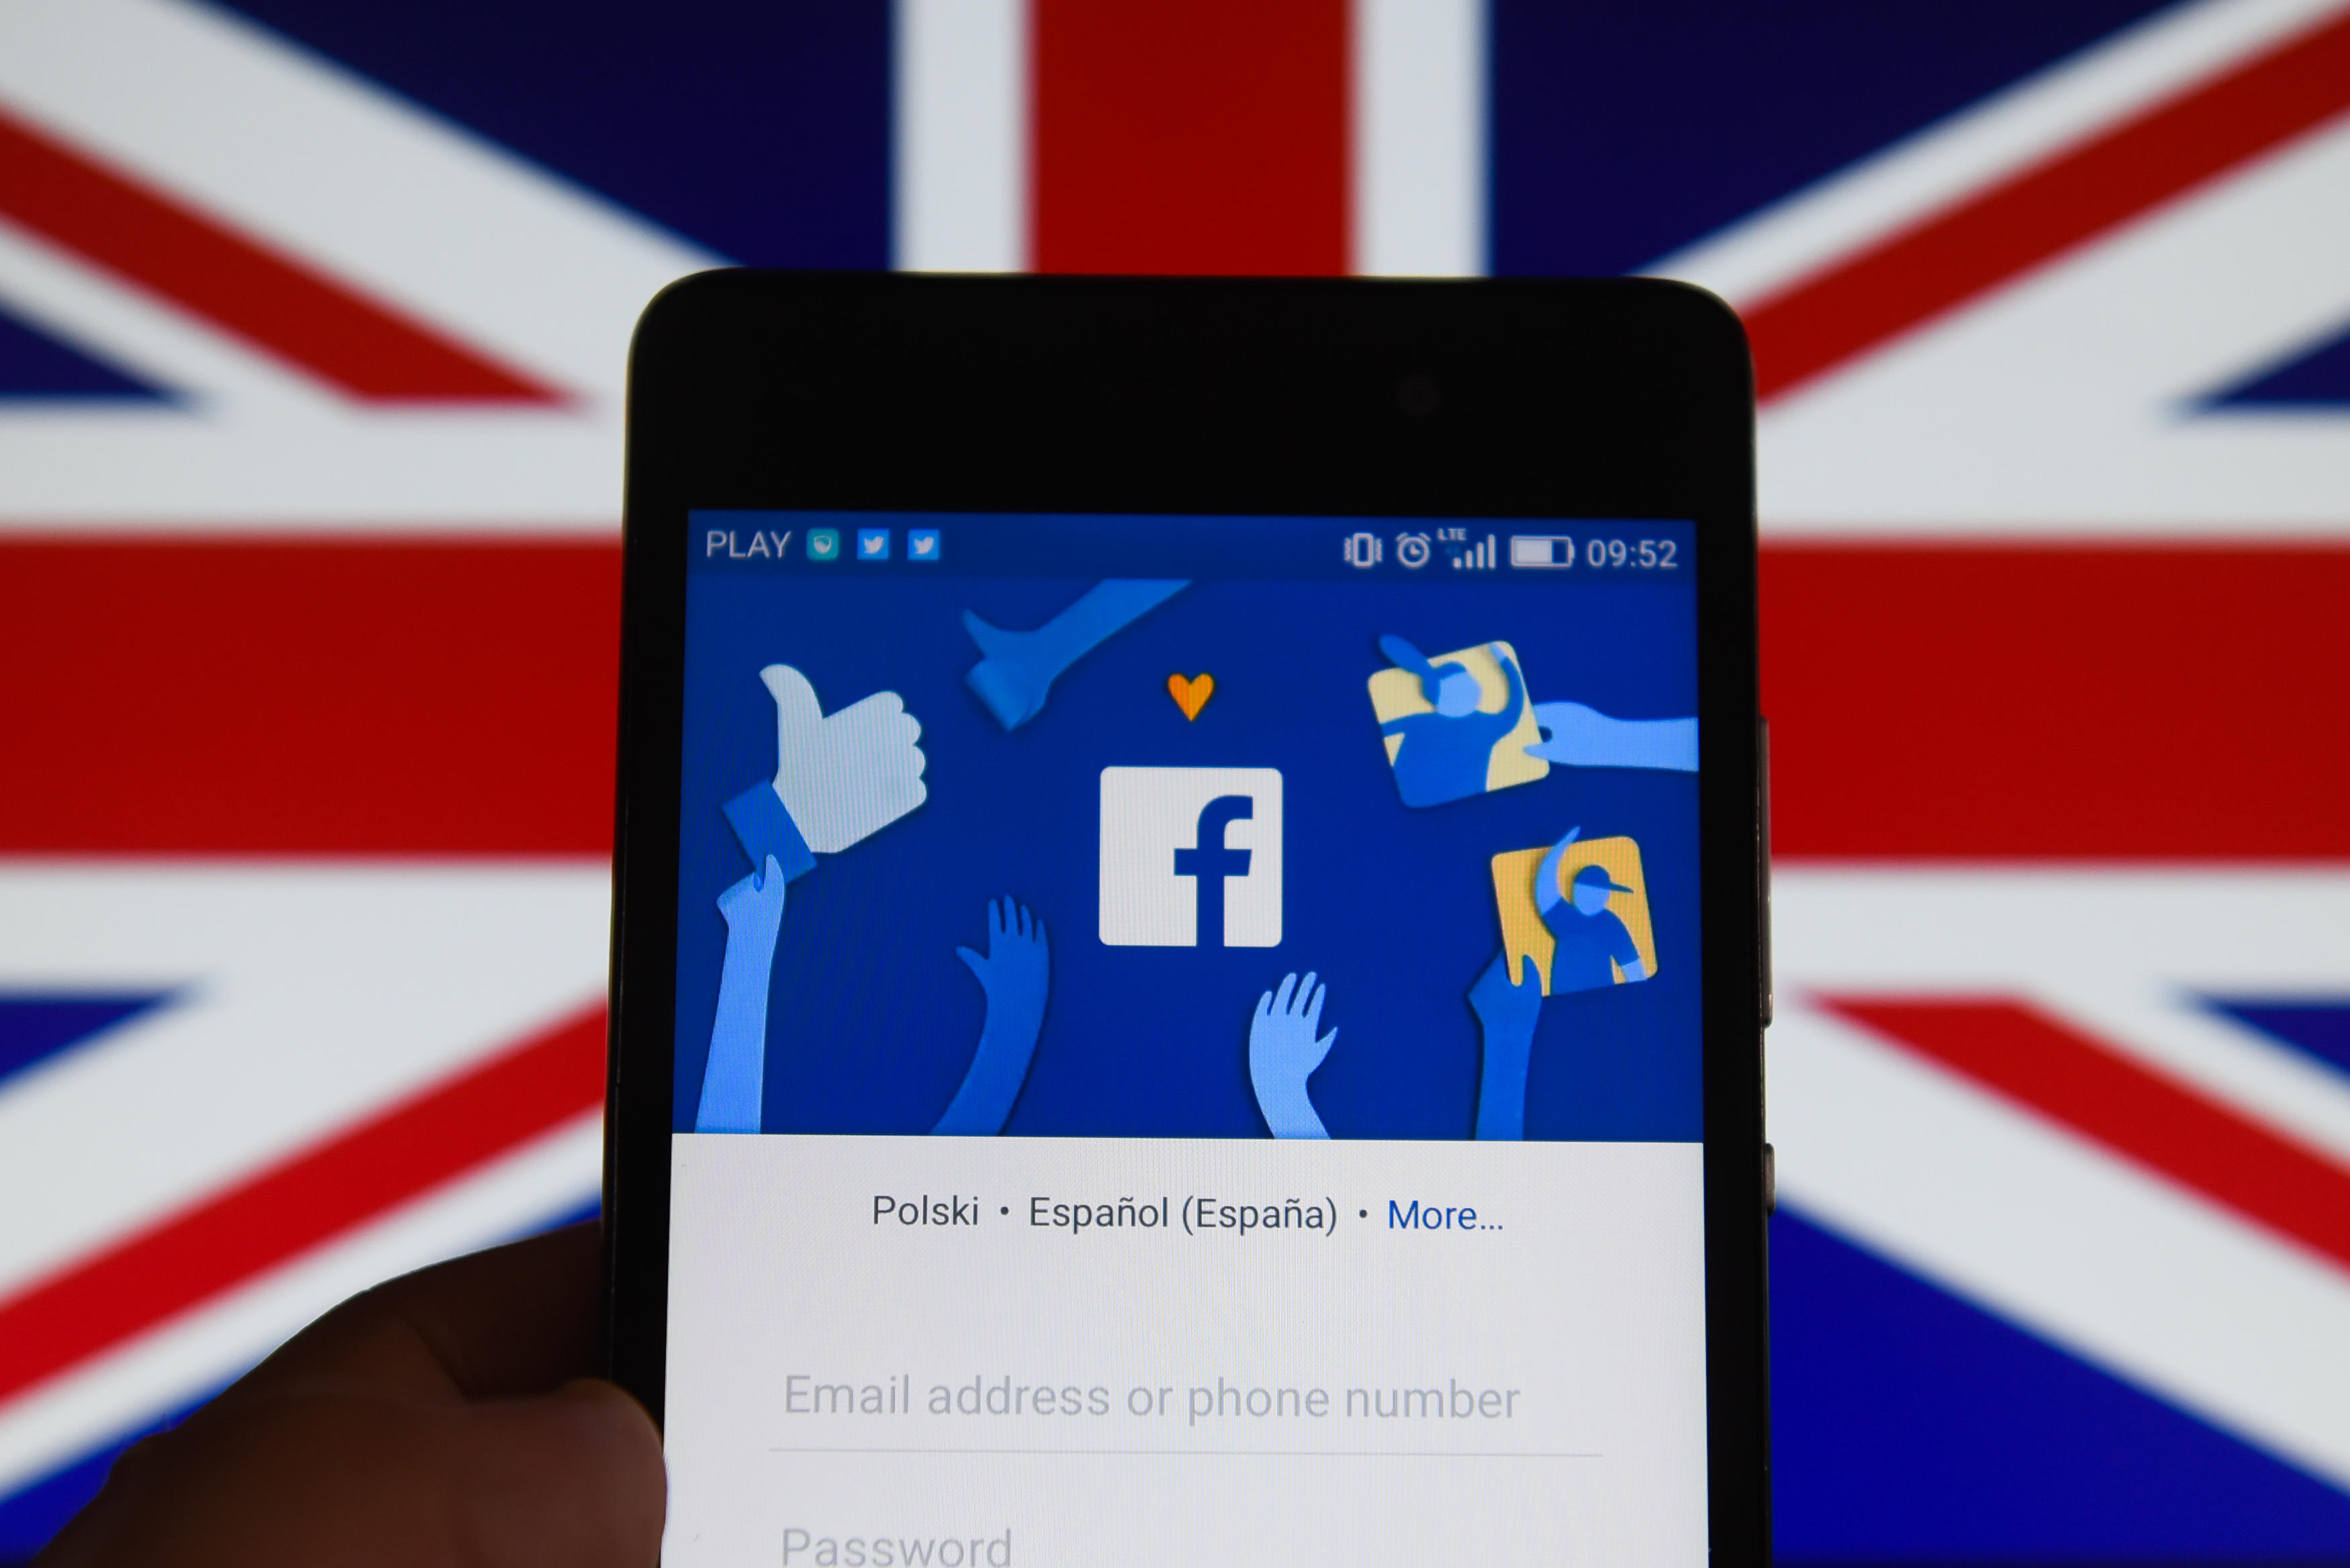 Facebook app with United Kingdom flag are seen in this photo